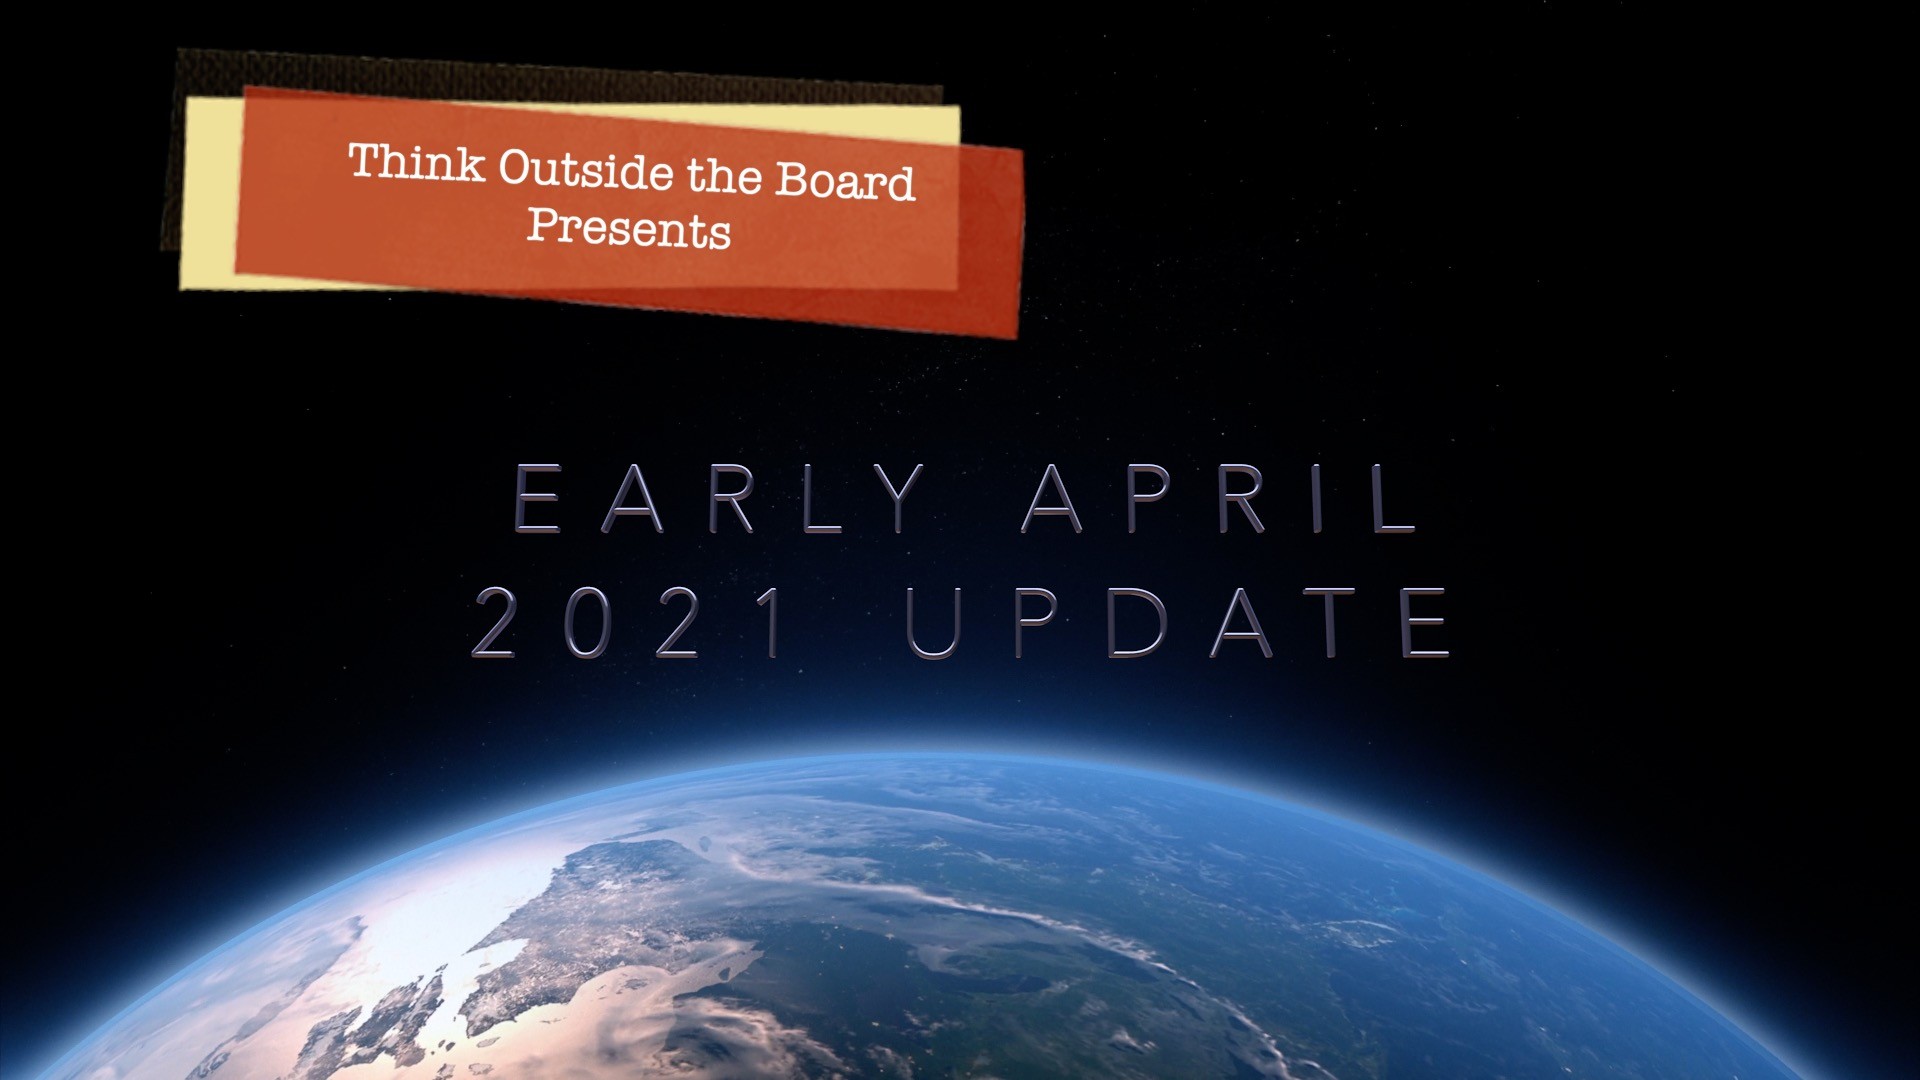 Early April 2021 Update